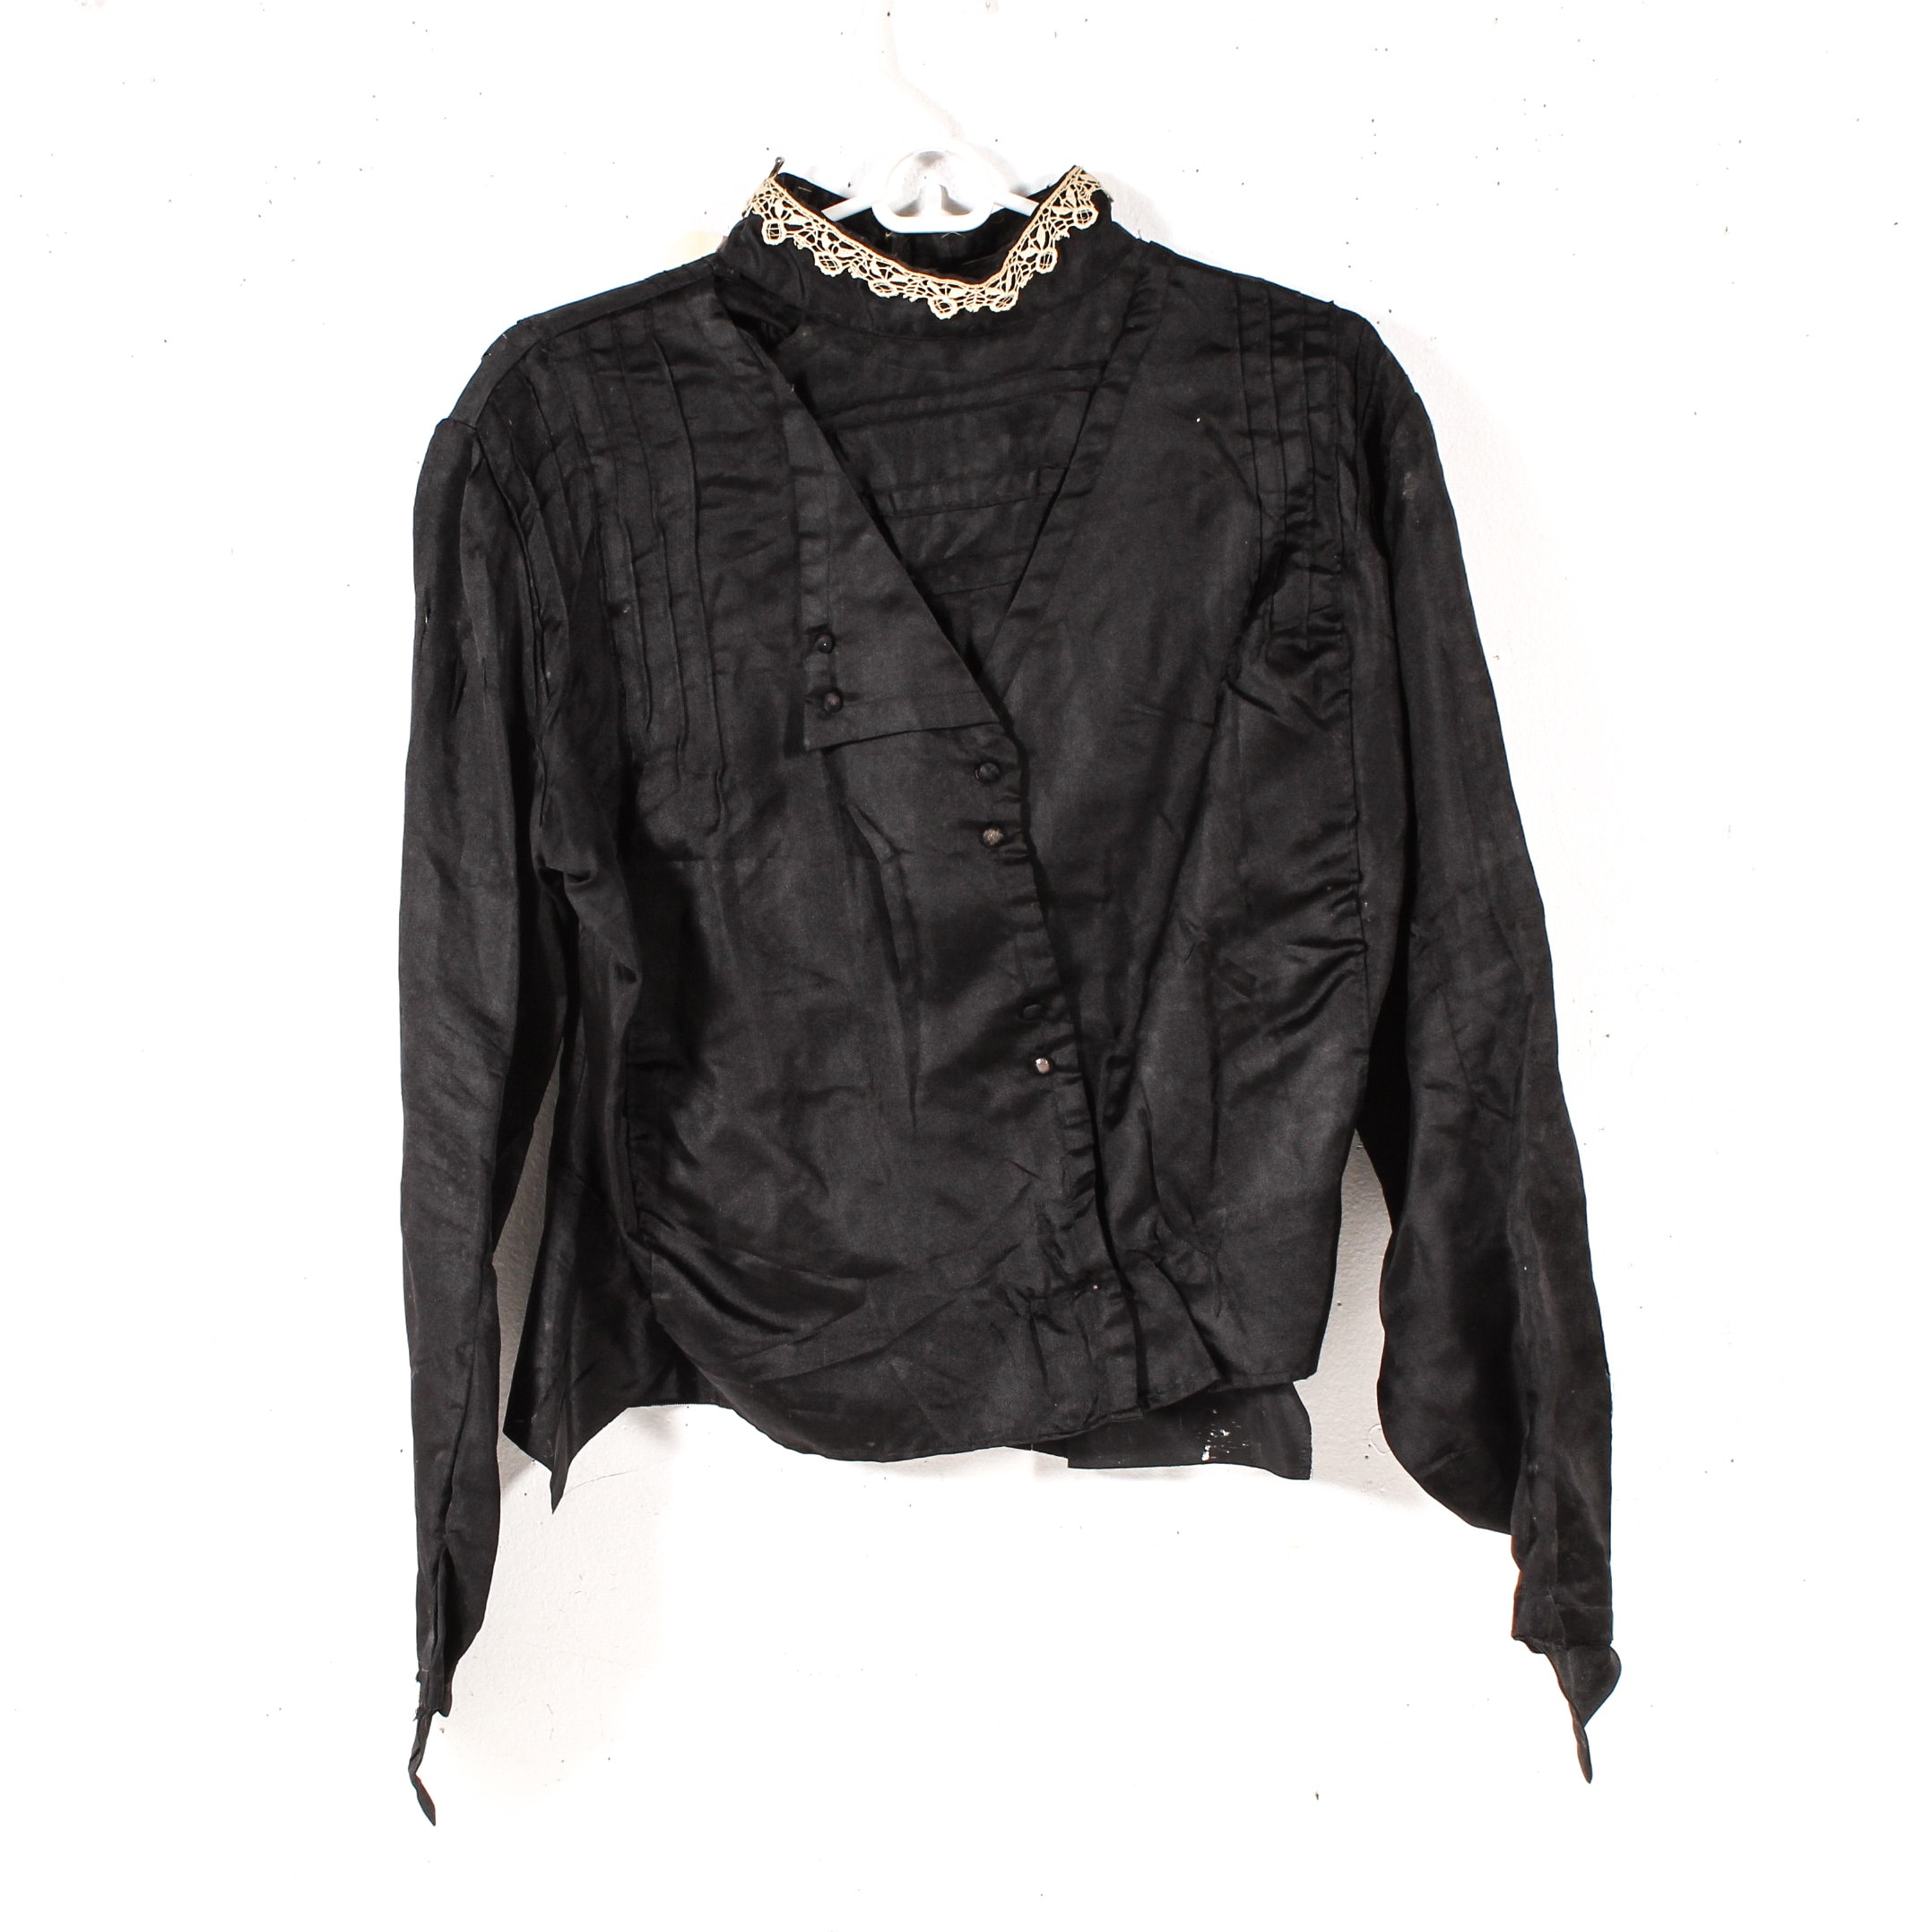 Women's Edwardian Style Black Blouse with Lace Collar